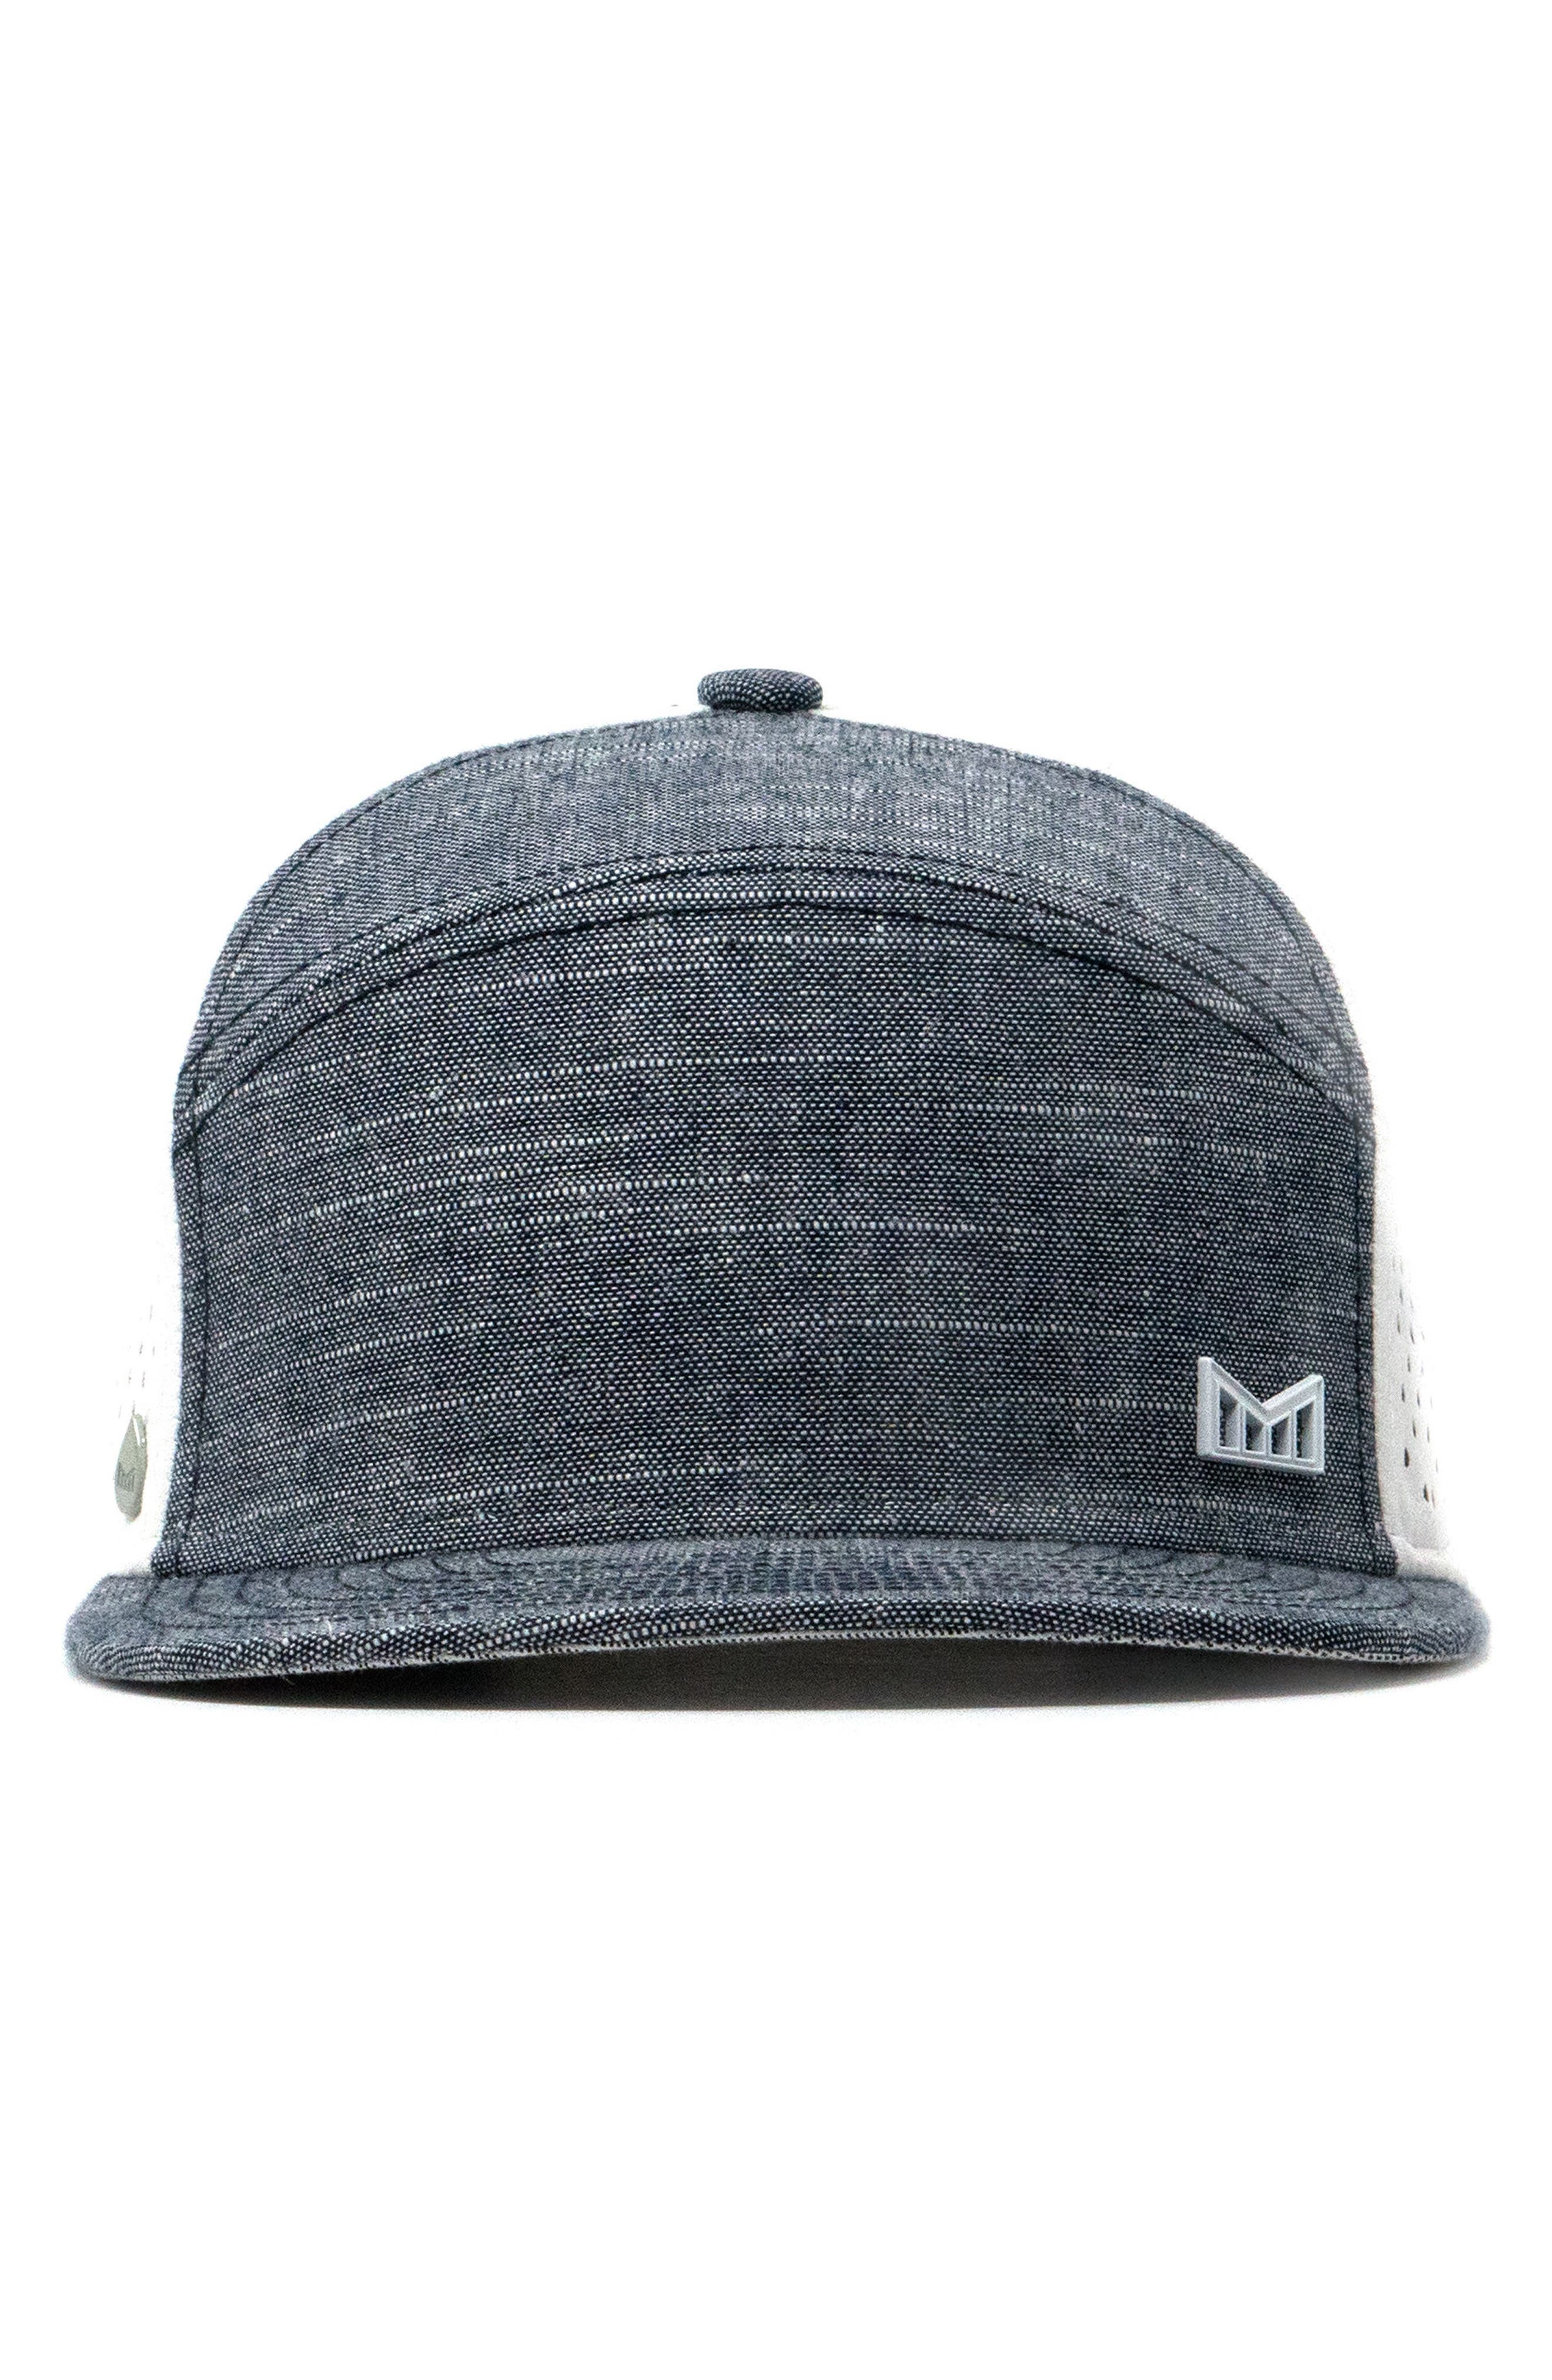 online store d5cde 2bbd4 ... new arrivals melin trenches snapback baseball cap blue in navy white  06800 edc3e